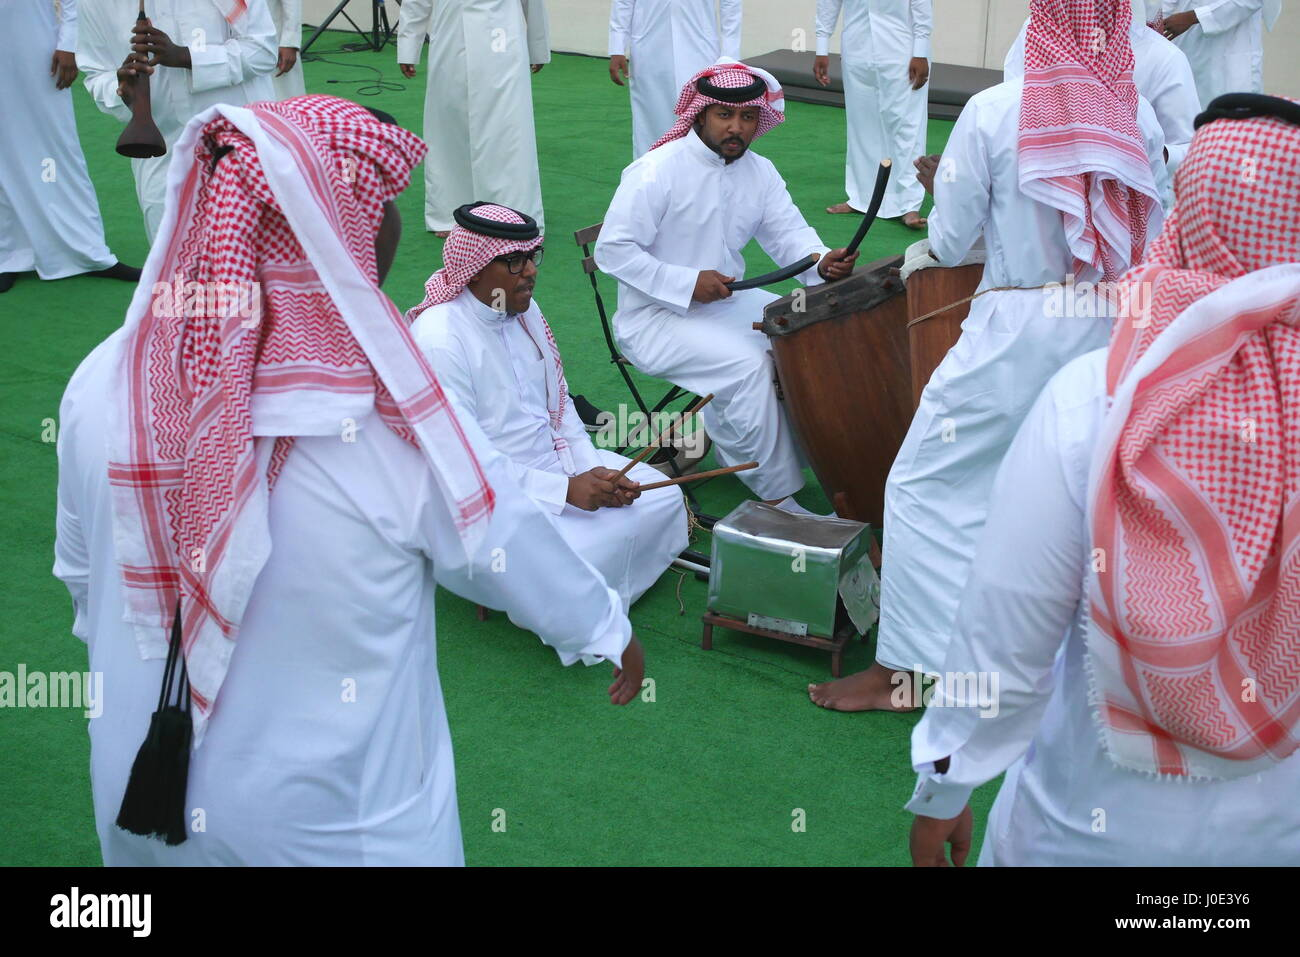 Traditional Bahrain dance accompanied by drums and mizmar. The men are wearing dishdashas, ghutra (keffiyeh) and - Stock Image